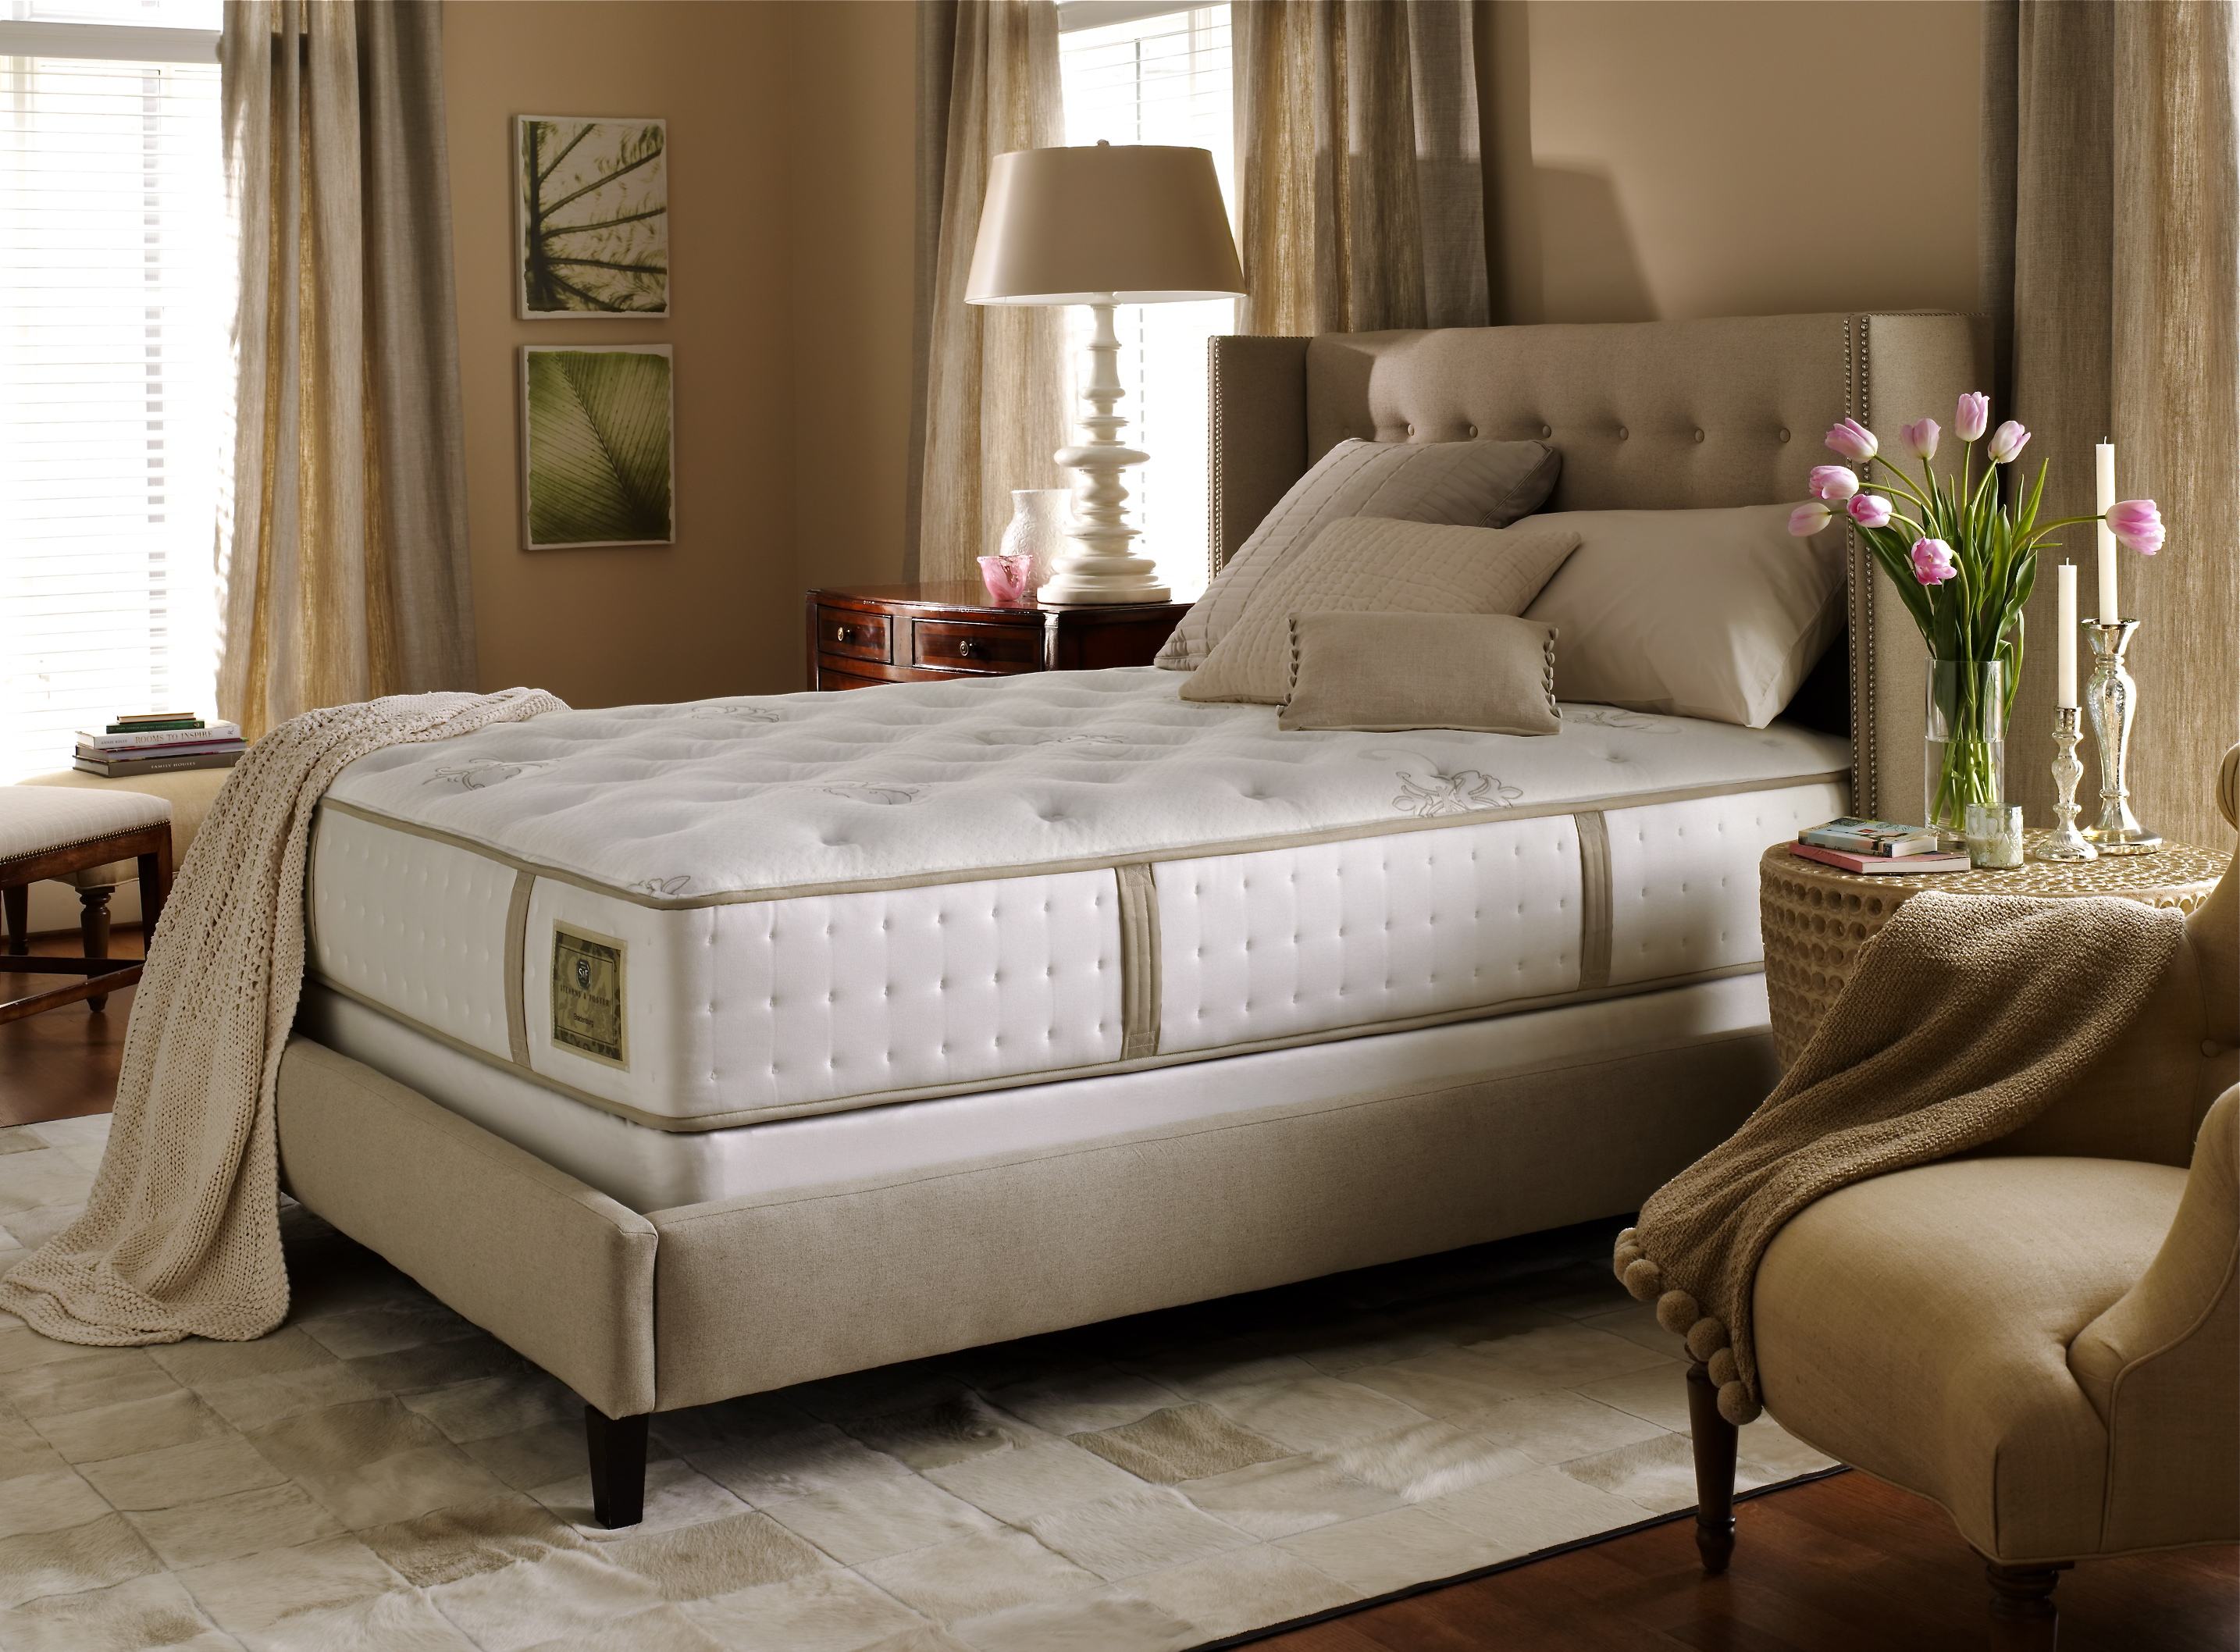 Simple Ways to Clean Bed Mattress At Home